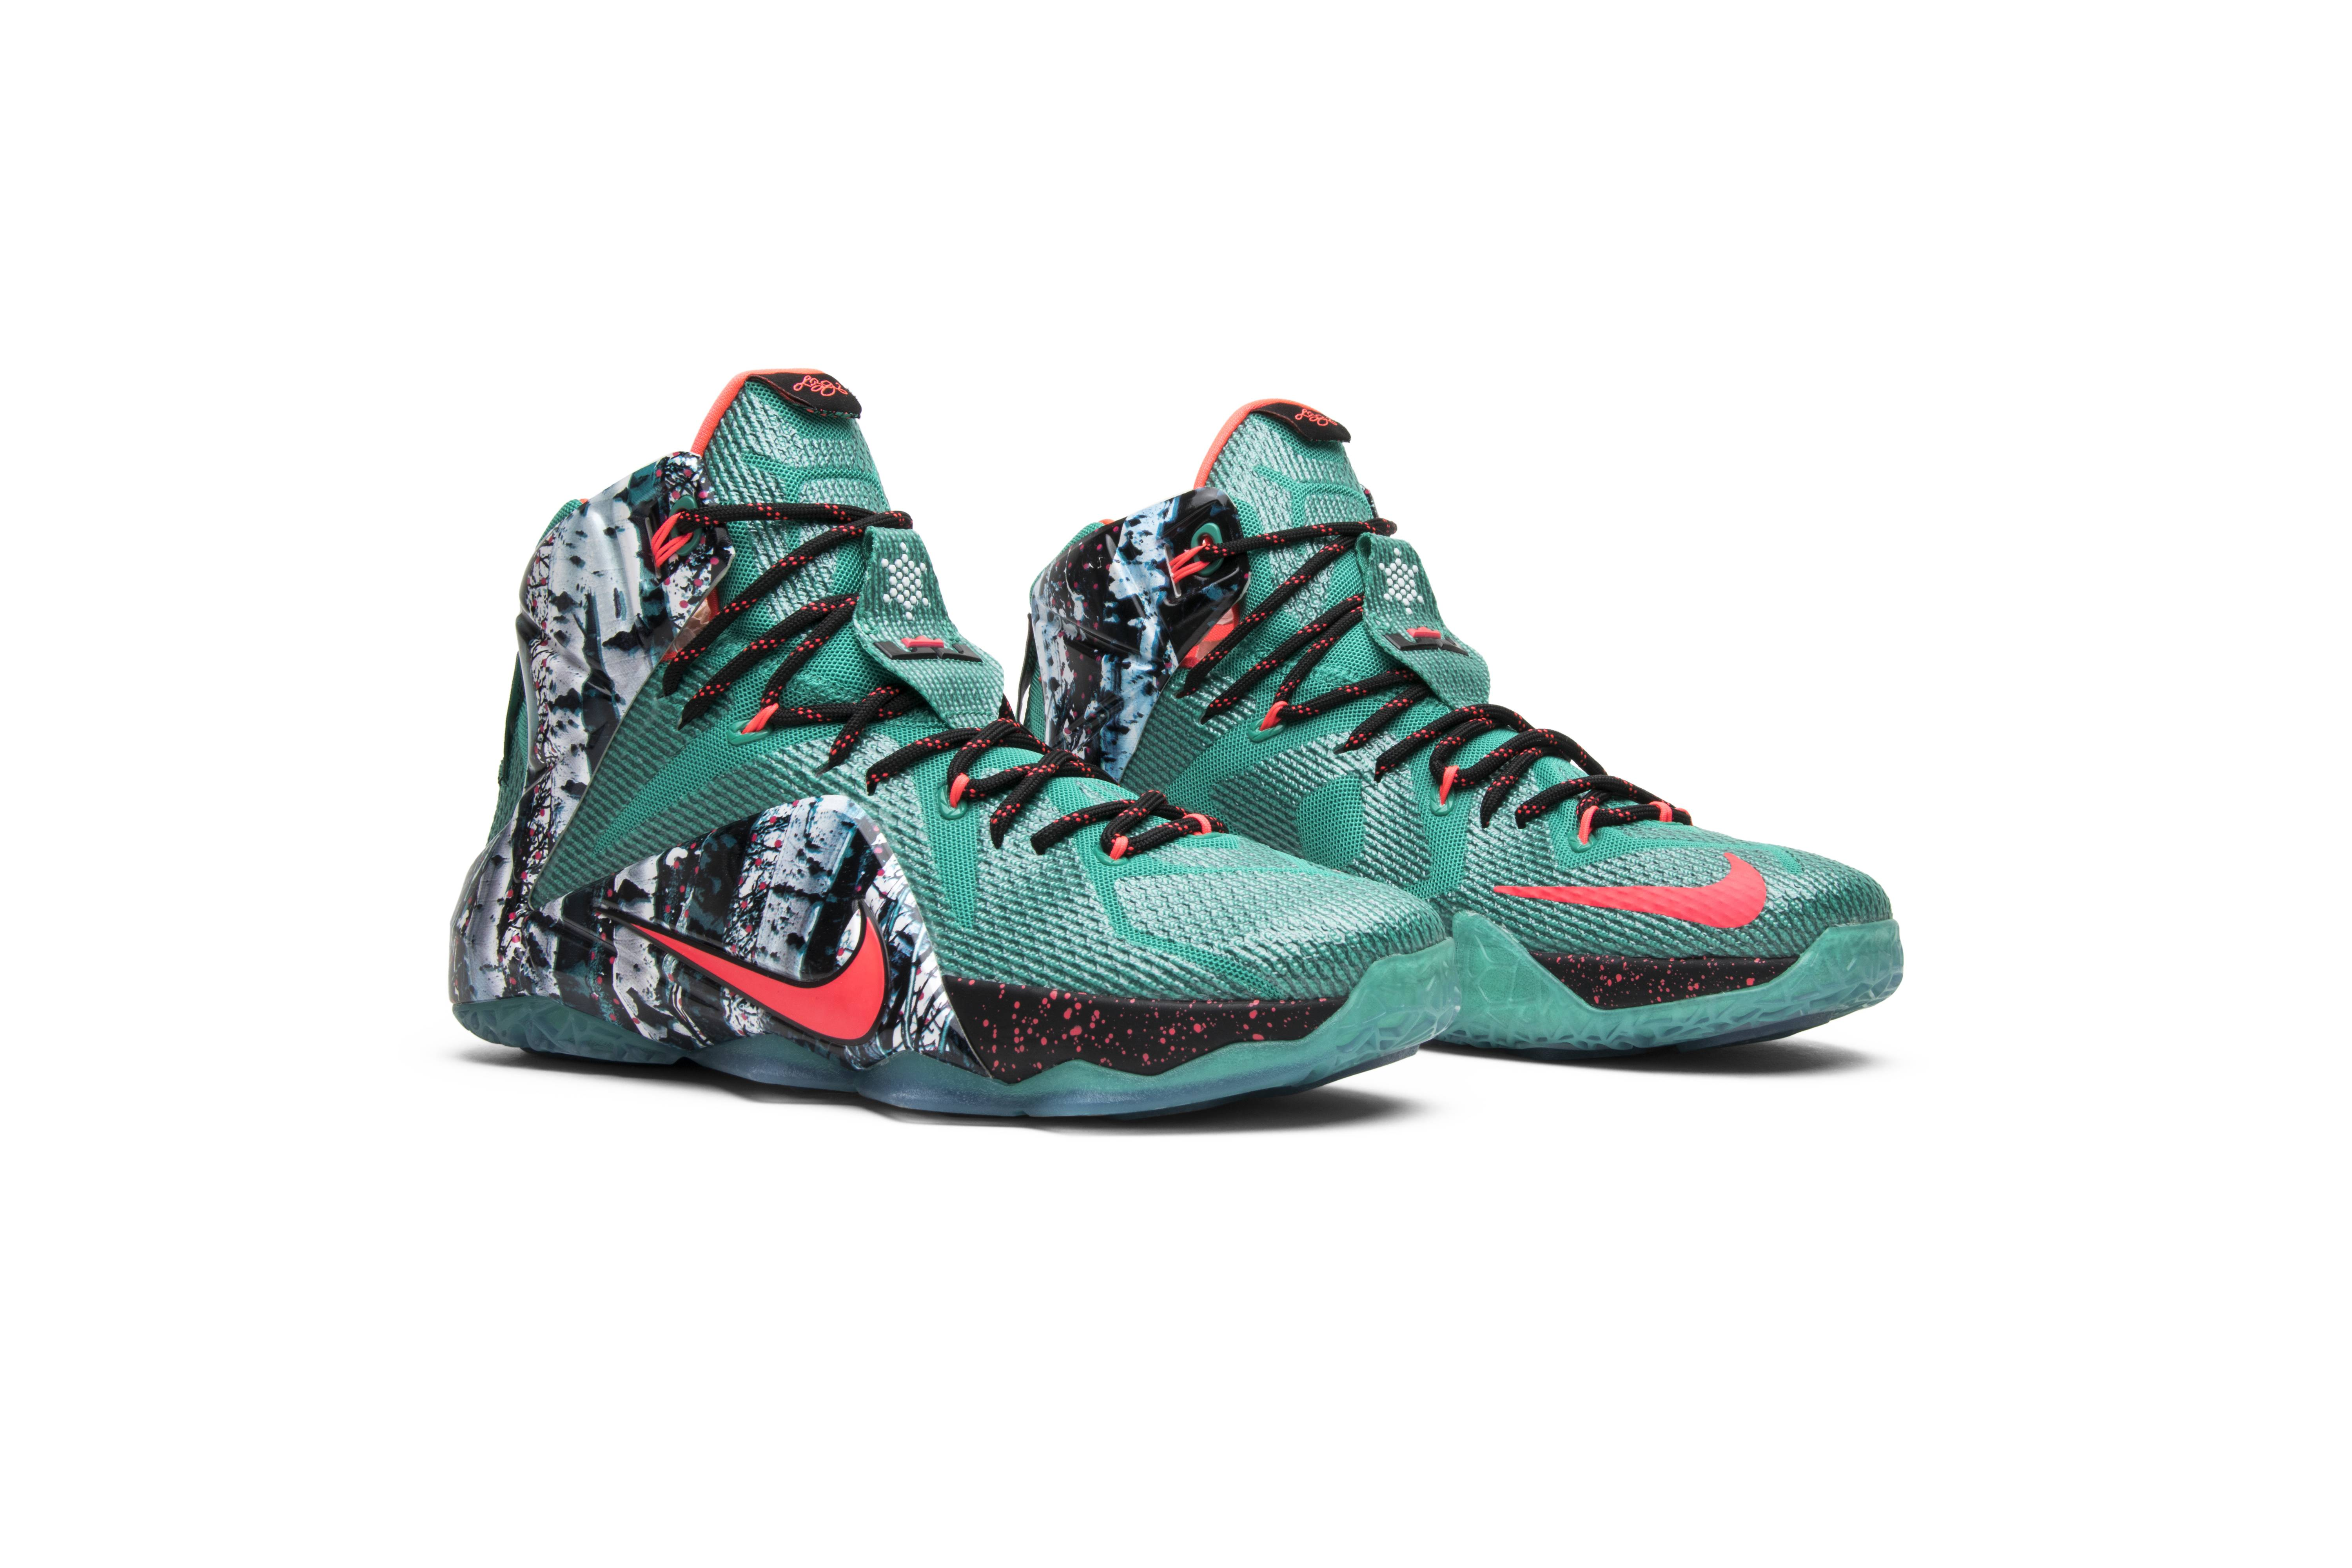 separation shoes 6c43b f89e1 ... coupon for lebron 12 gs buckets nike 685181 401 goat 89993 37172